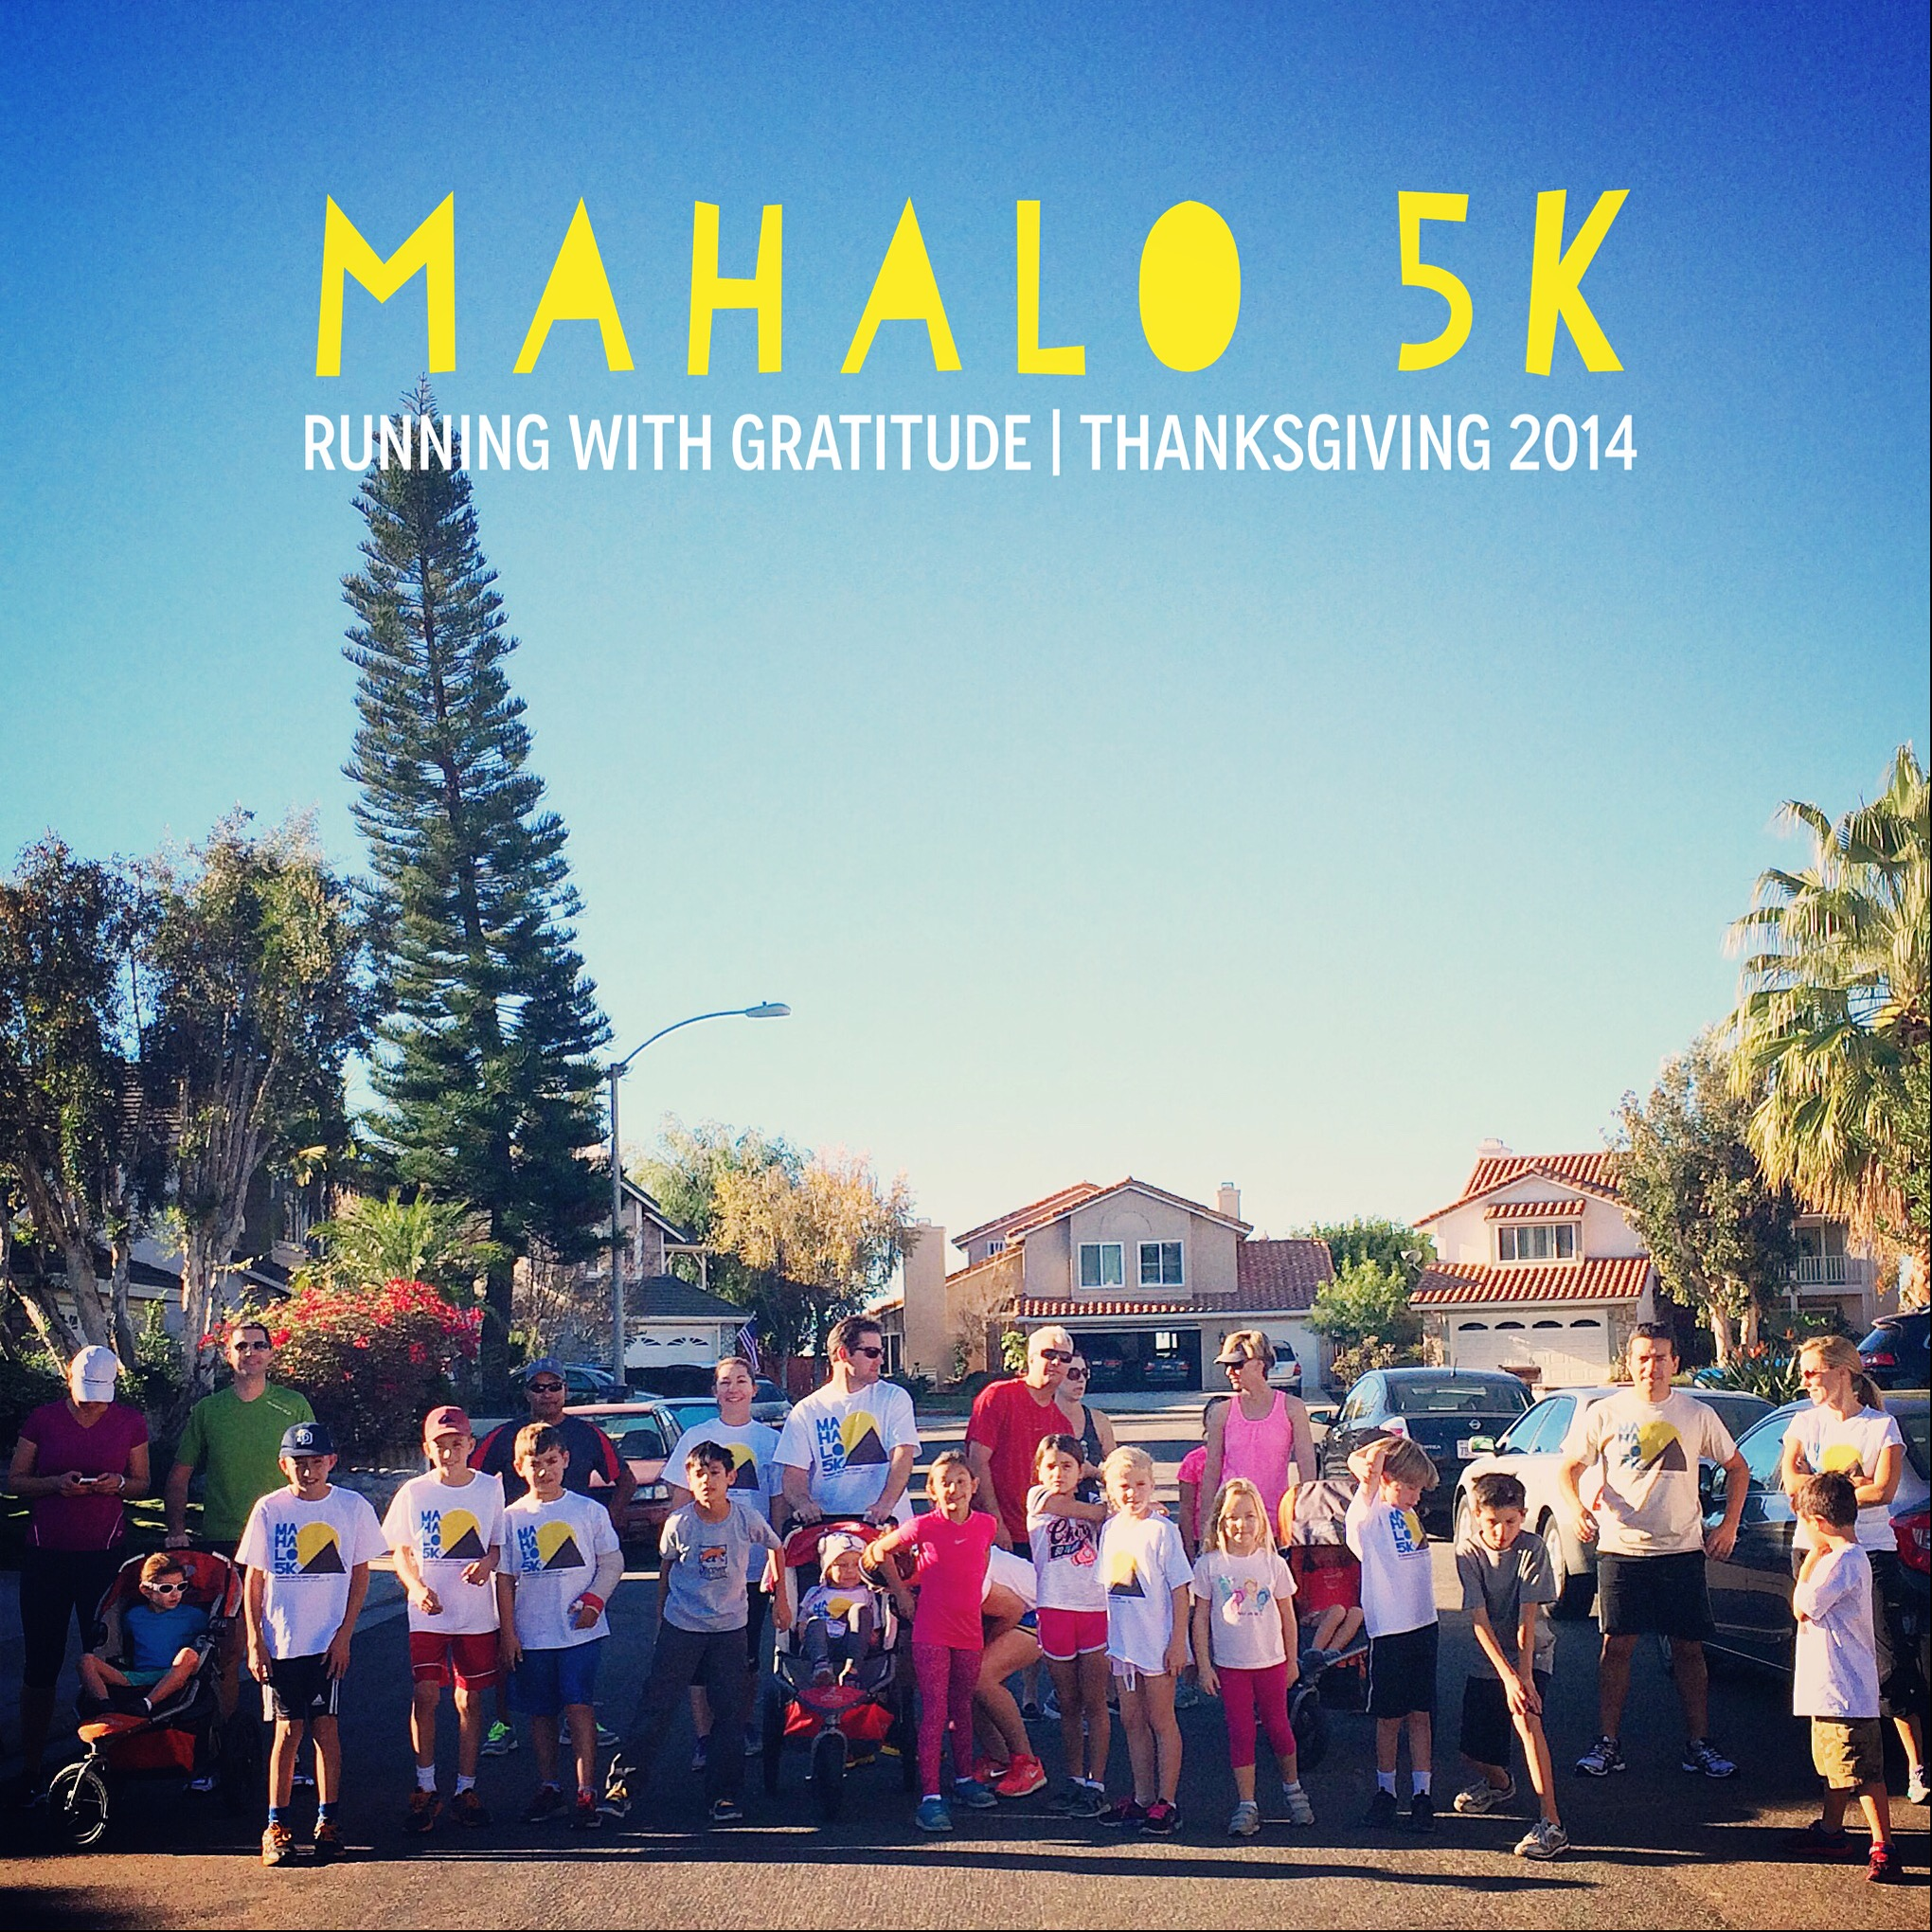 Our Turkey Trot, the Mahalo 5k